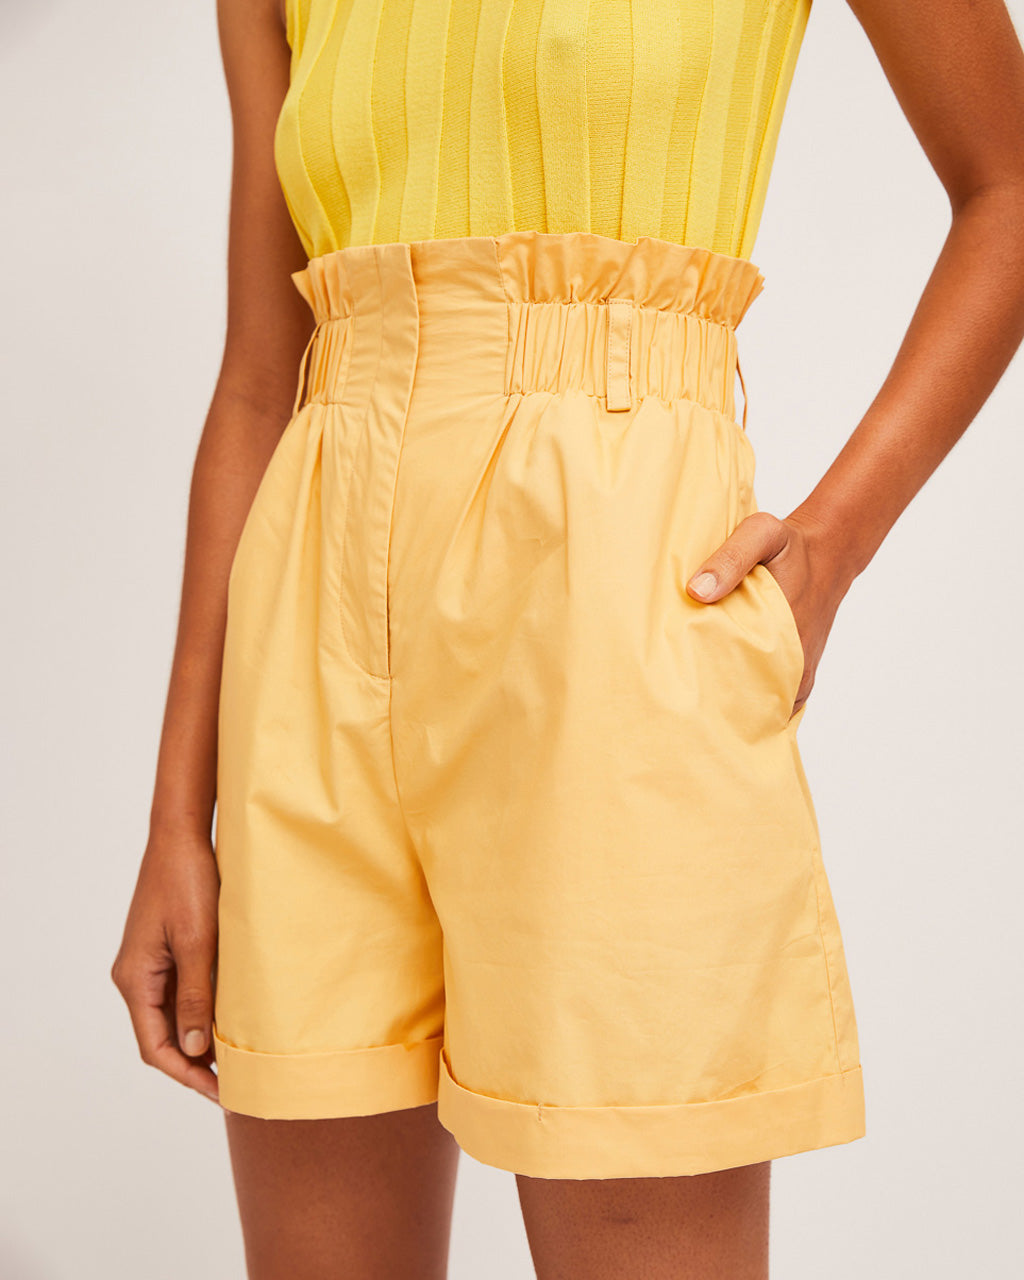 detail shot of model wearing yellow tank top with yellow high waist paper bag shorts